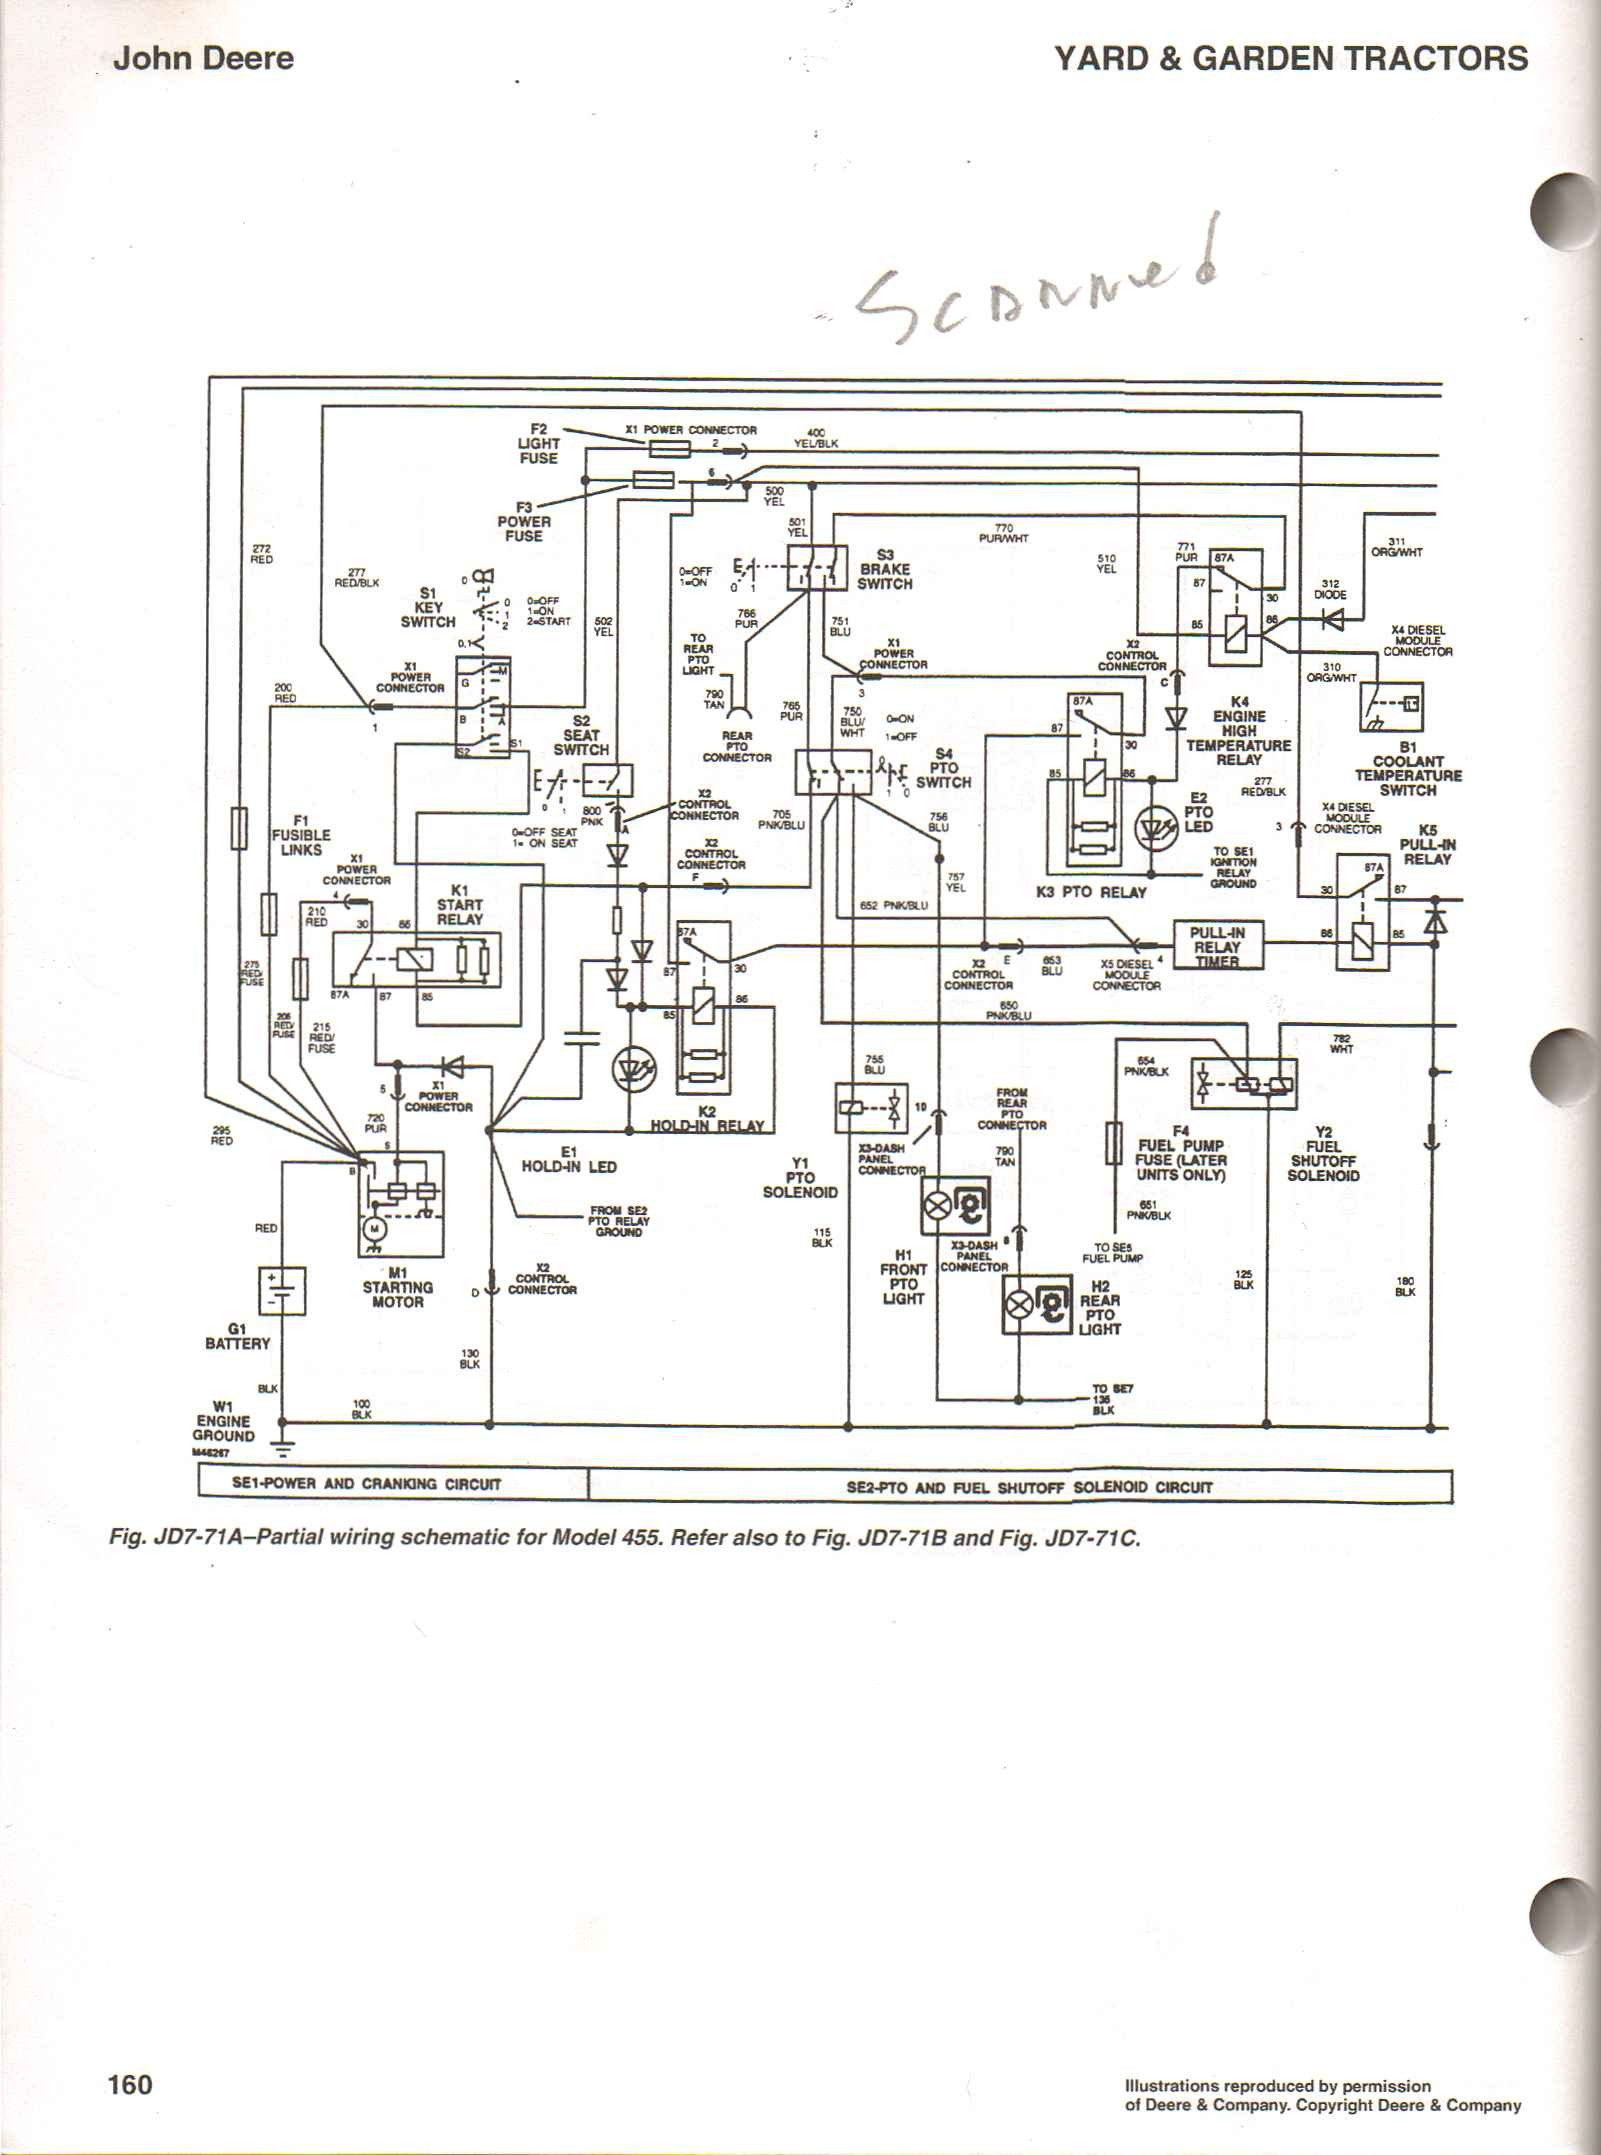 31 John Deere La105 Parts Diagram